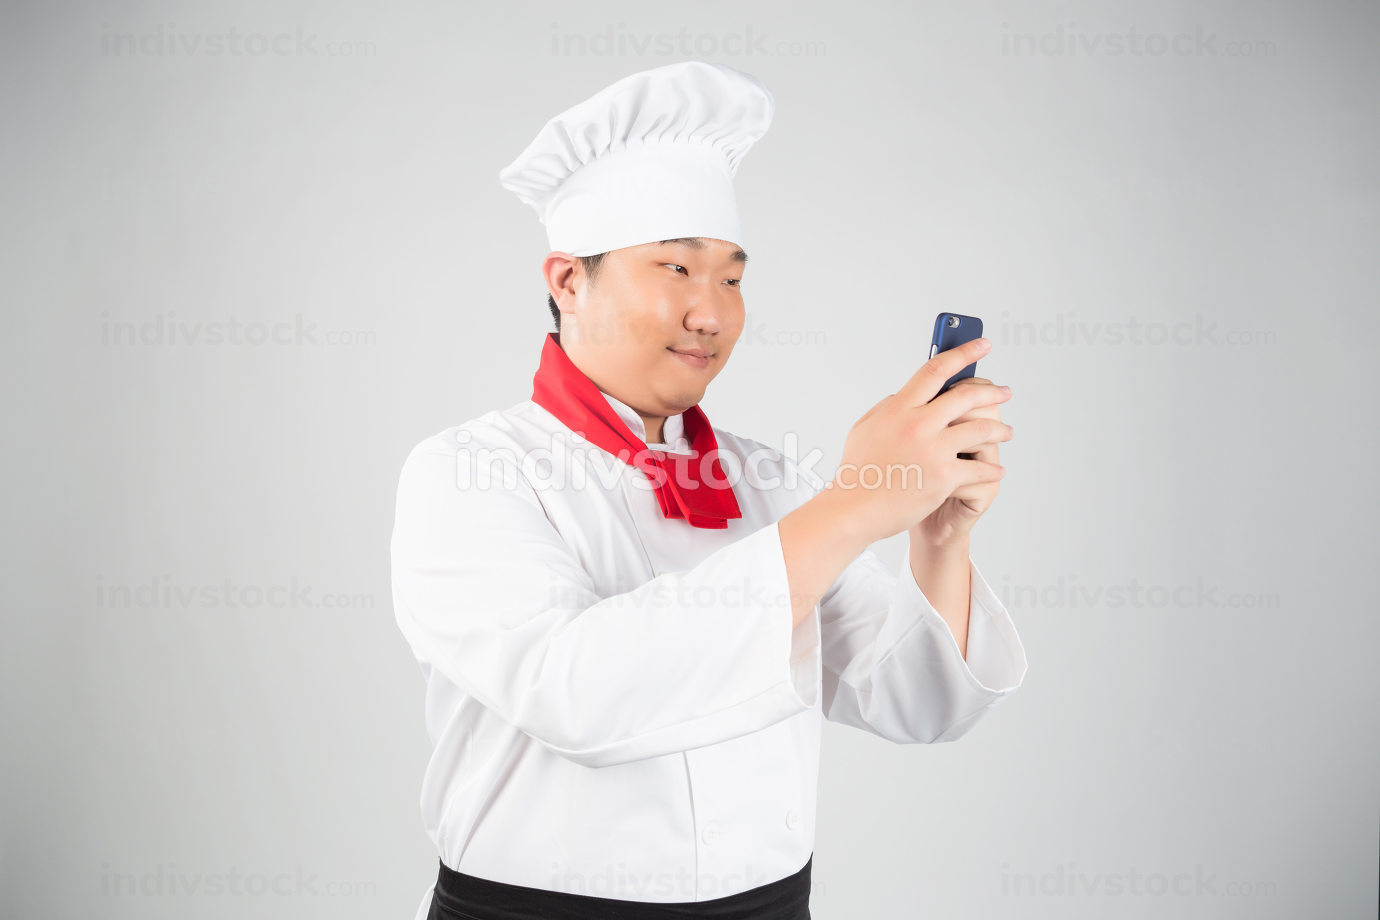 Young Cook With Red Scarf Looking At Phone Surprised, Isolated